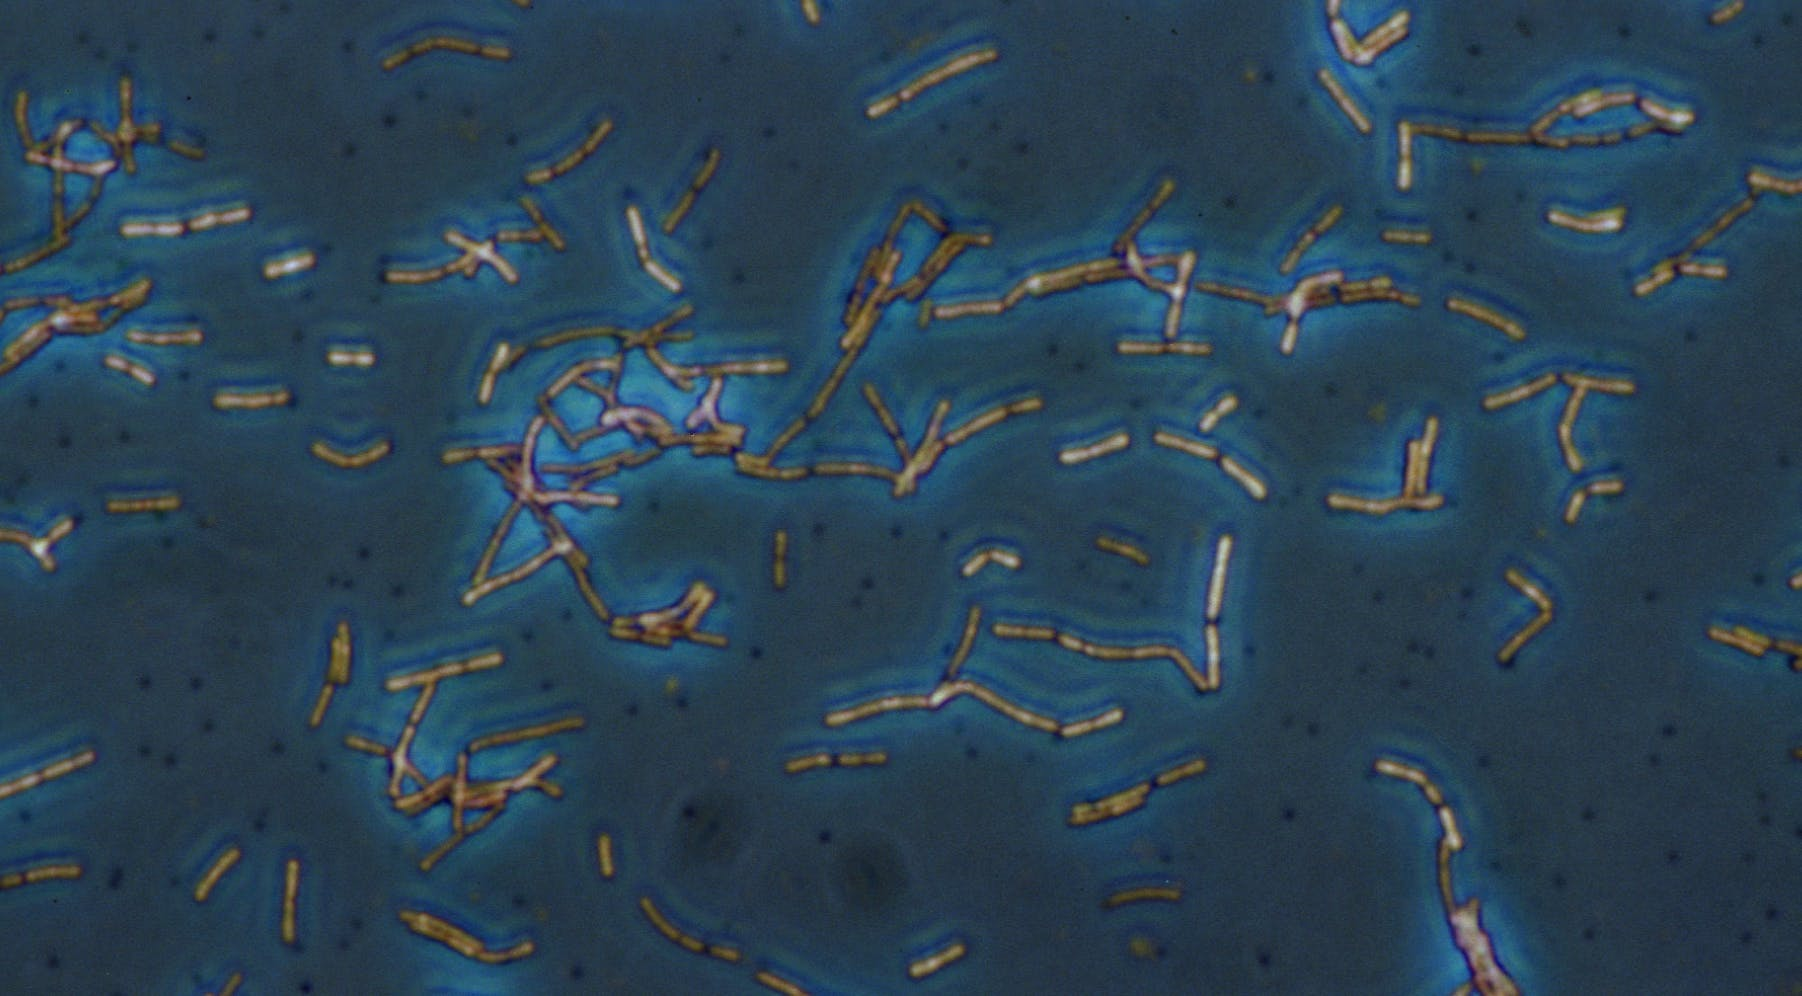 microbes on a blue background